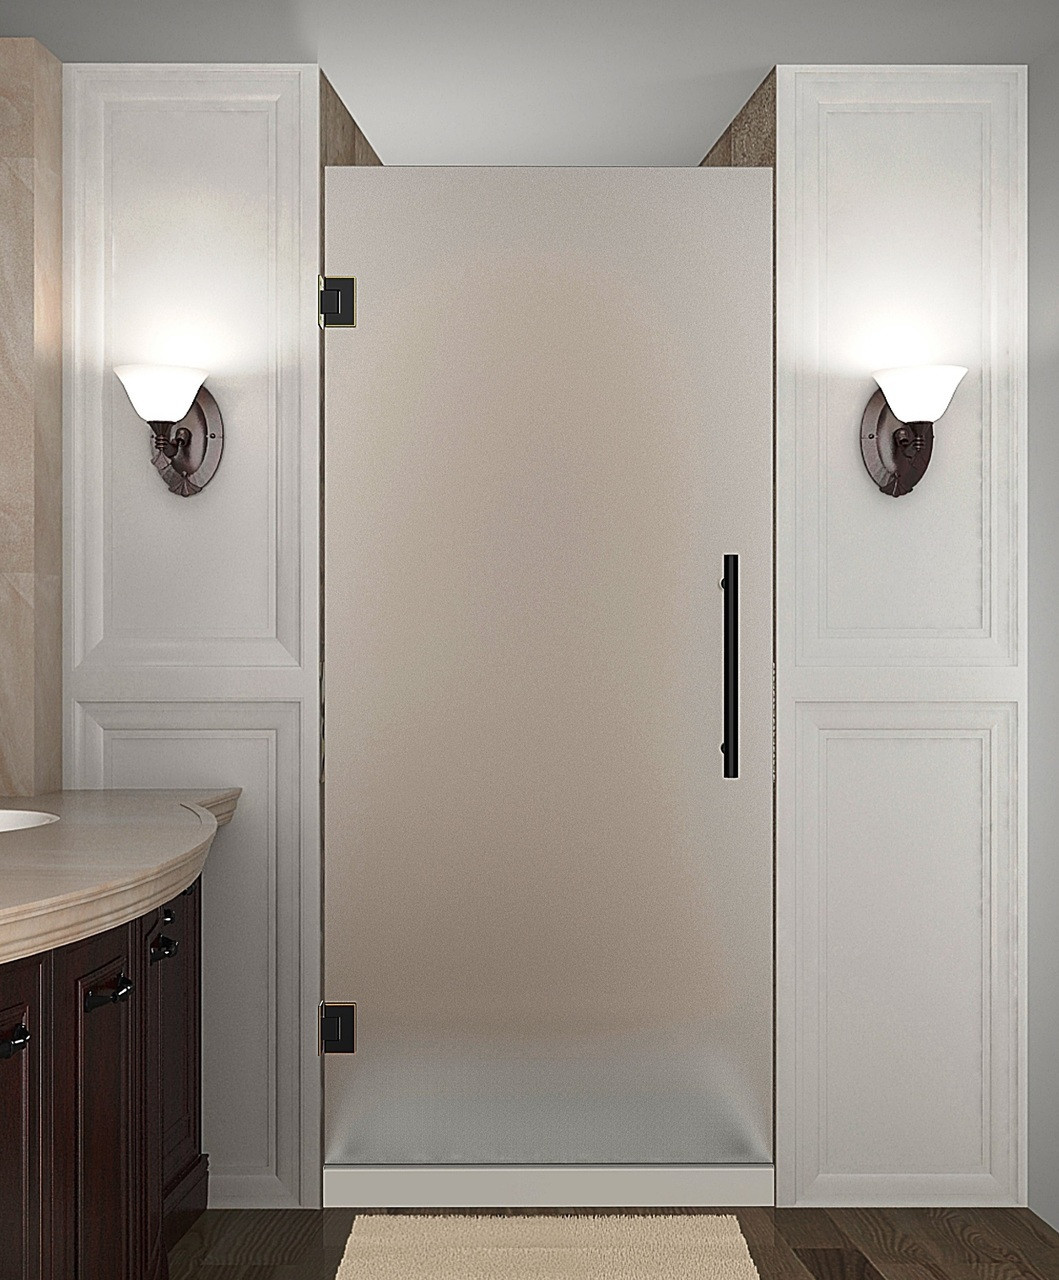 Aston SDR995F-ORB-27-10 Cascadia 27 In x 72 In Completely Frameless Hinged Glass Shower Door In Oil Rubbed Bronze